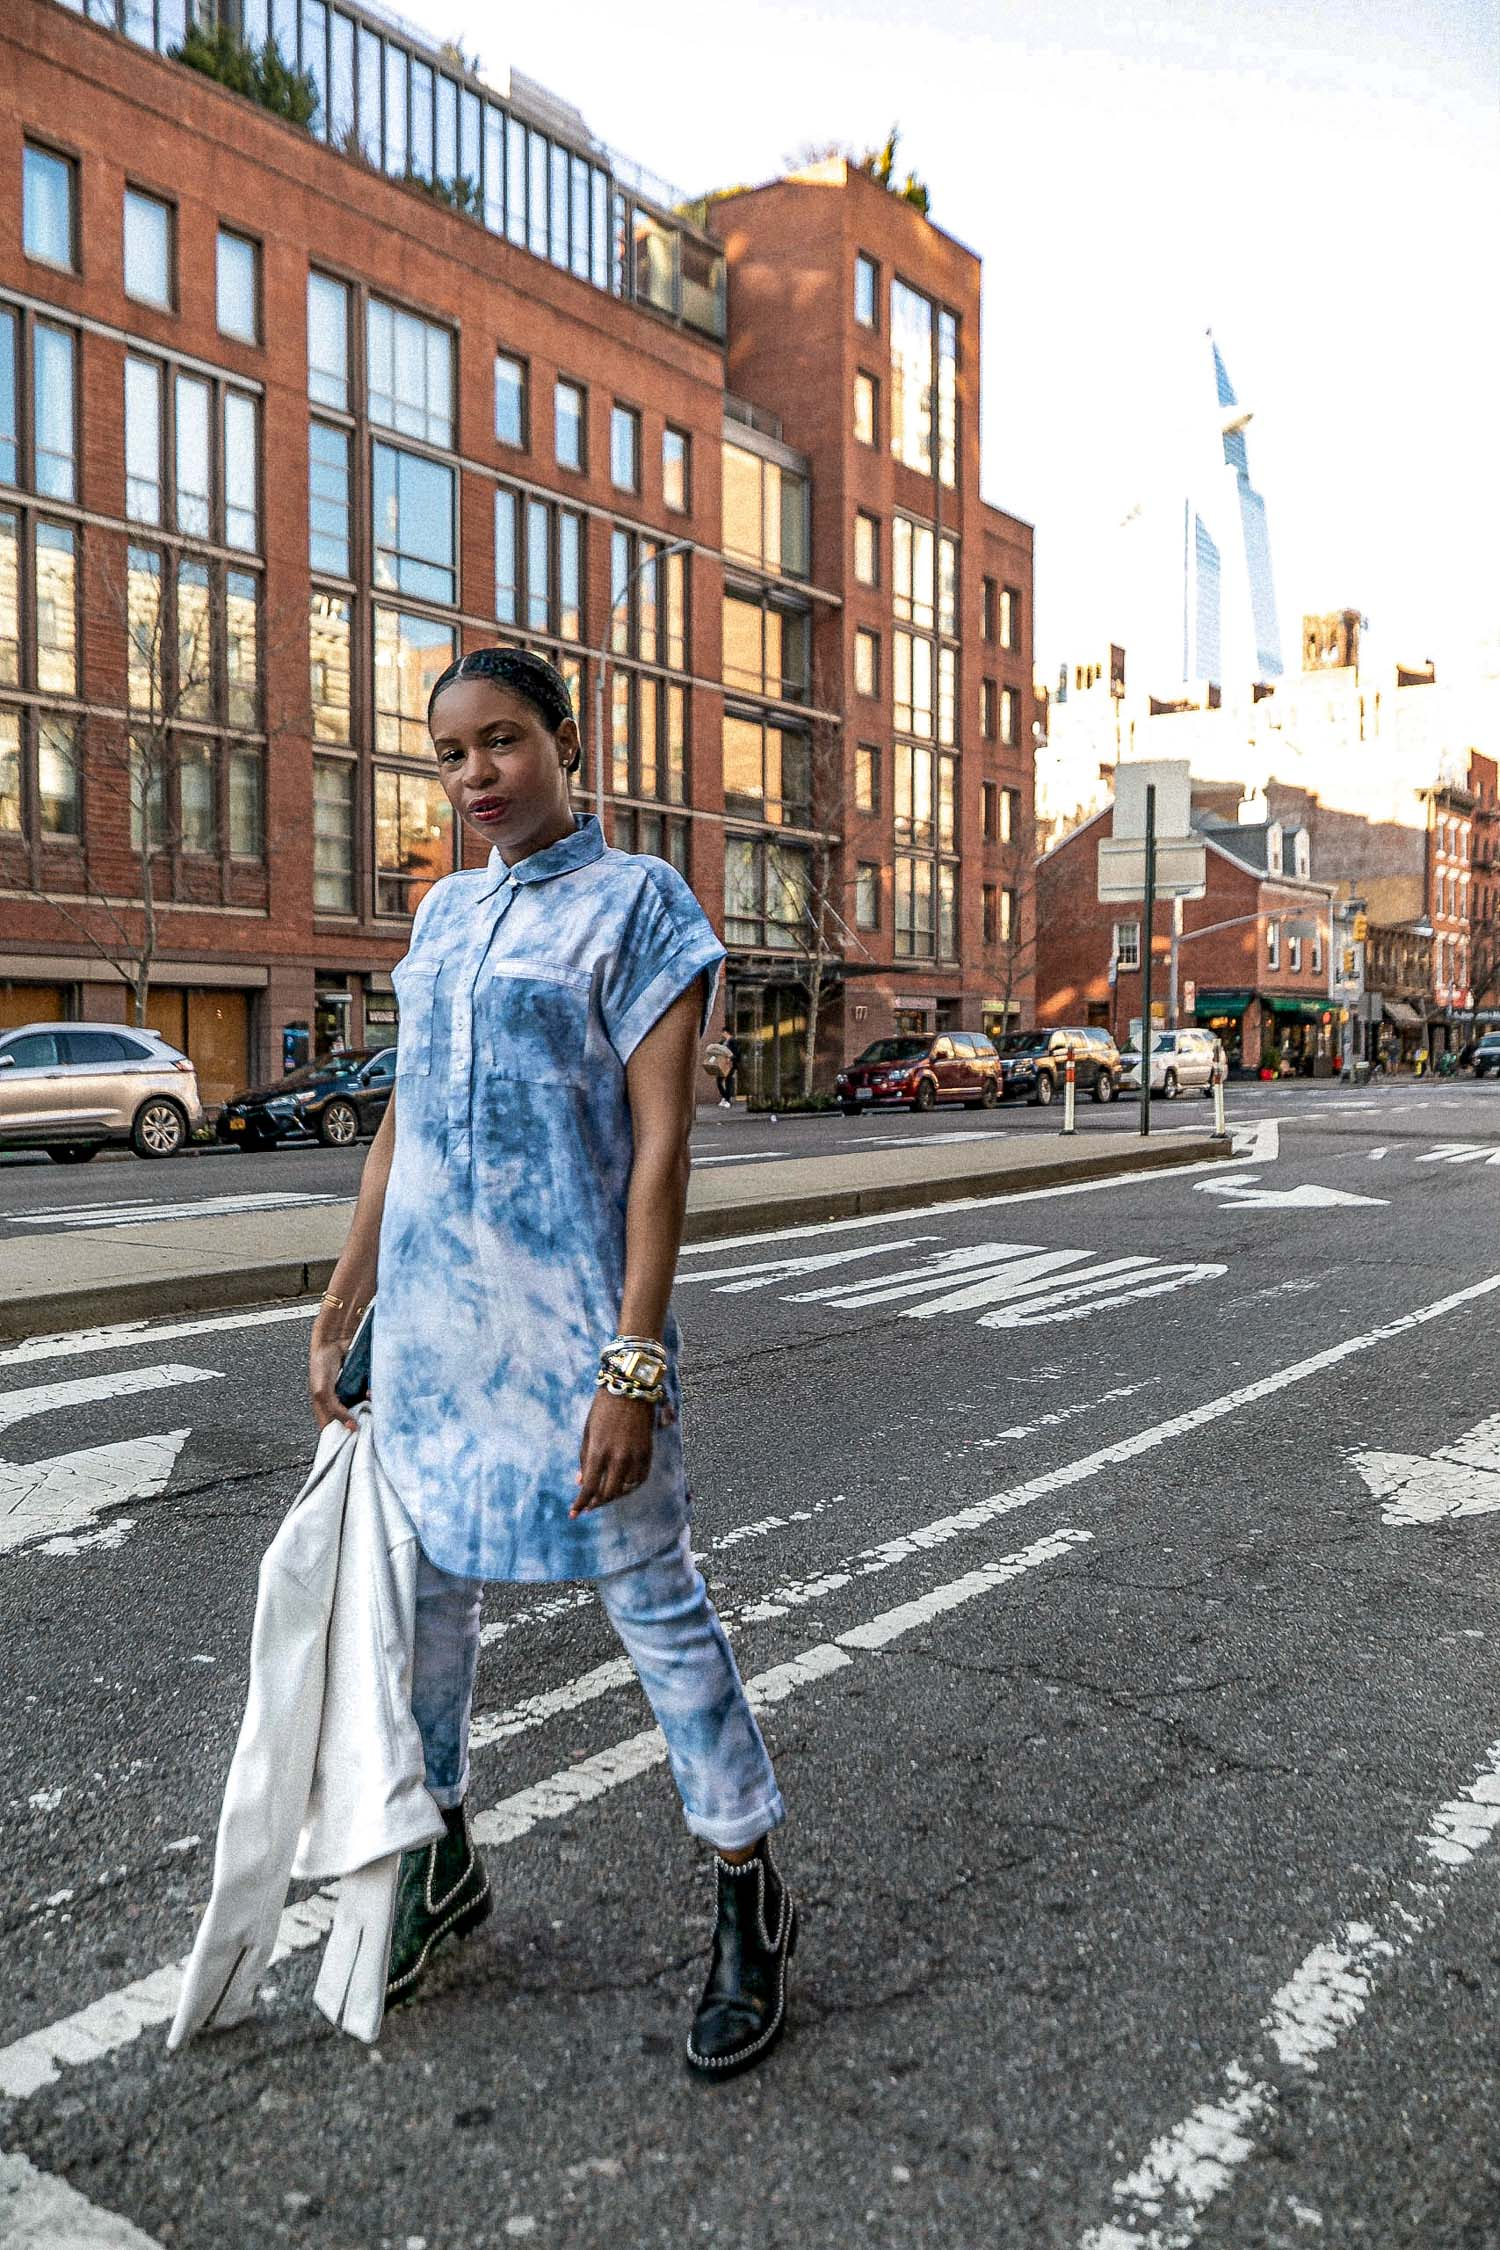 atlanta blogger monica awe-etuk wearing a tie-dye dress over tie-dye jeans from walmart, how to style tie-dye, how to style spring trends, how to style spring trends from head-to-toe, how to style blue and white tie-dye, what to wear with a tie-dye dress, how to style a dress over jeans, how to style tie-dye jeans, white biker jacket, how to style a white biker jacket, faux leather biker jacket, white leather jacket, combat boots, alexander wang combat boots, how to wear combat boots in spring